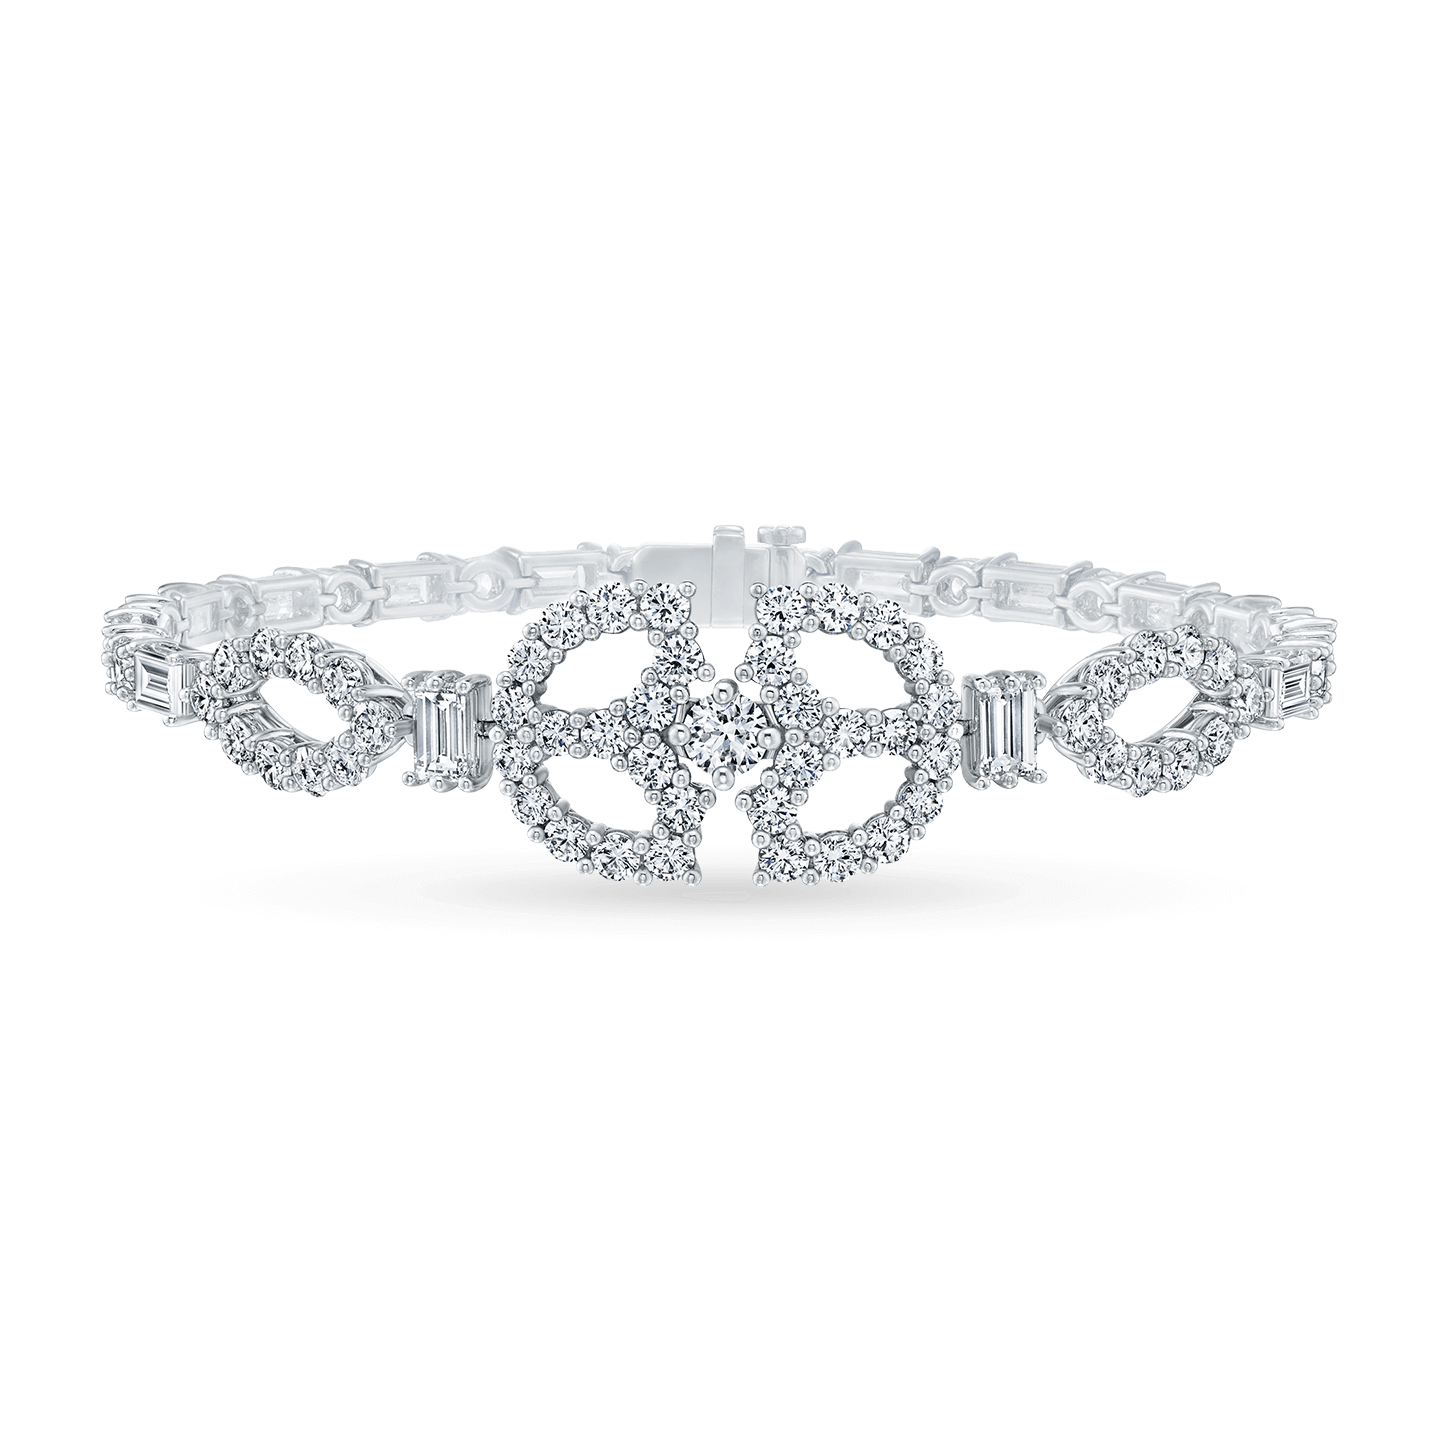 Art Deco Diamond Single Motif Bracelet, Product Image 1